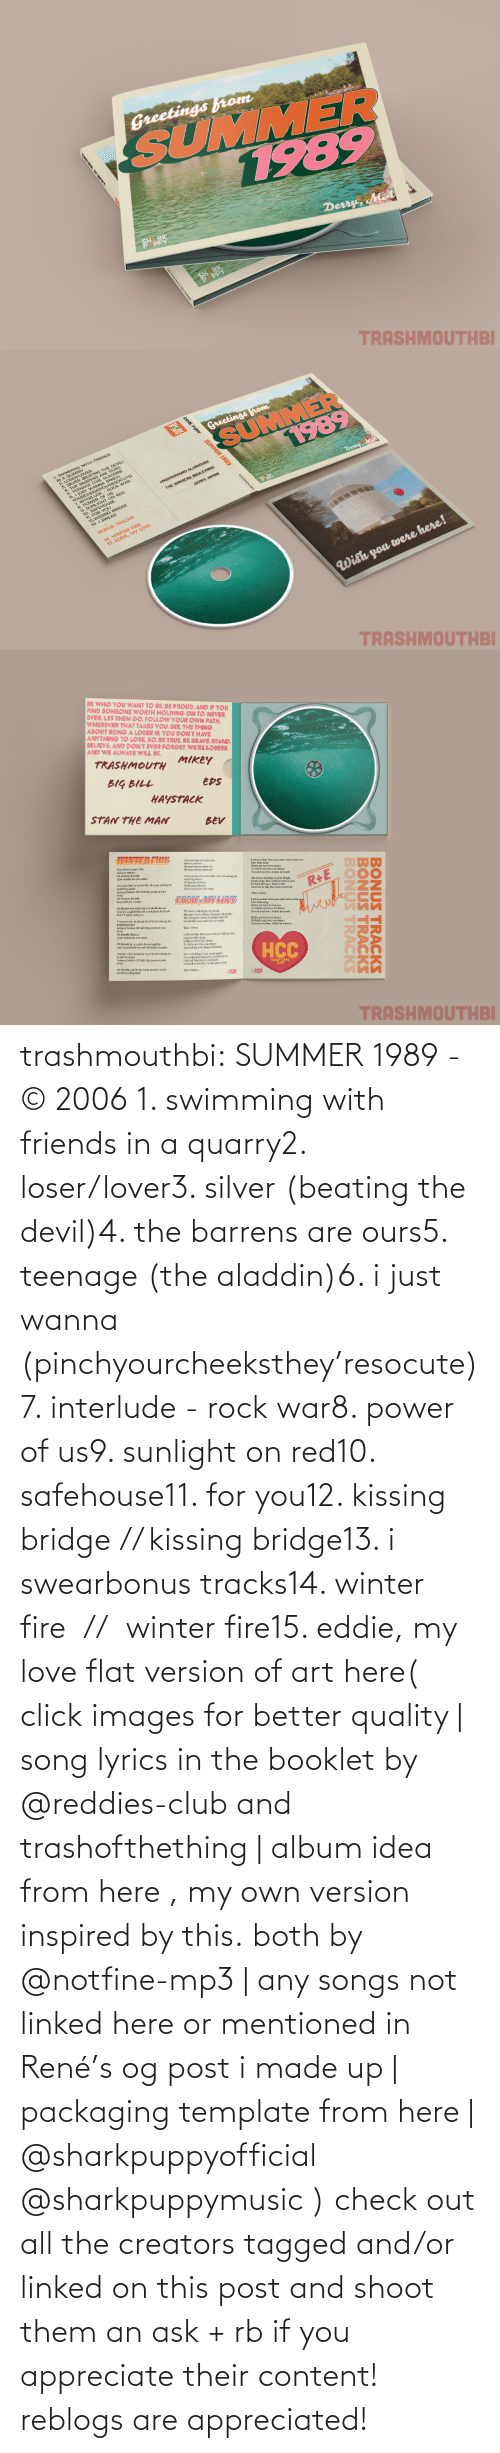 Lyrics: trashmouthbi: SUMMER 1989 - © 2006 1. swimming with friends in a quarry2. loser/lover3. silver (beating the devil)4. the barrens are ours5. teenage (the aladdin)6. i just wanna (pinchyourcheeksthey'resocute)7. interlude - rock war8. power of us9. sunlight on red10. safehouse11. for you12. kissing bridge // kissing bridge13. i swearbonus tracks14. winter fire  //  winter fire15. eddie, my love flat version of art here( click images for better quality | song lyrics in the booklet by @reddies-club​ and trashofthething | album idea from here , my own version inspired by this. both by @notfine-mp3​ | any songs not linked here or mentioned in René's og post i made up | packaging template from here | @sharkpuppyofficial​ @sharkpuppymusic​ ) check out all the creators tagged and/or linked on this post and shoot them an ask + rb if you appreciate their content! reblogs are appreciated!